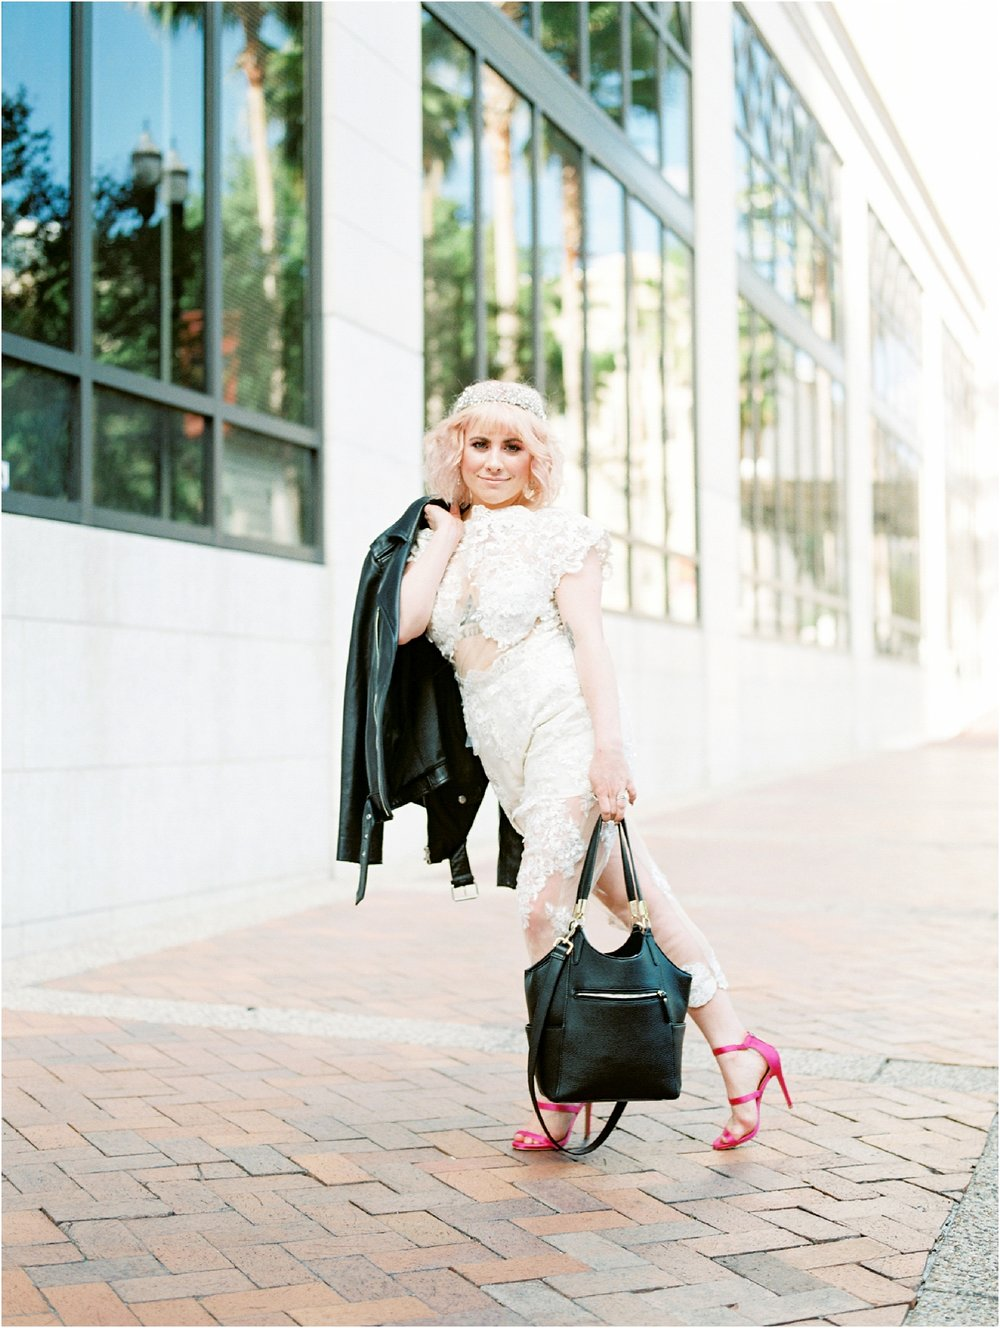 Lisa Silva Photography- Ponte Vedra Beach and Jacksonville, Florida Fine Art Film Wedding Photography- Bridal Jumpsuit Shoot in Downtown Jacksonville, FL_0029.jpg